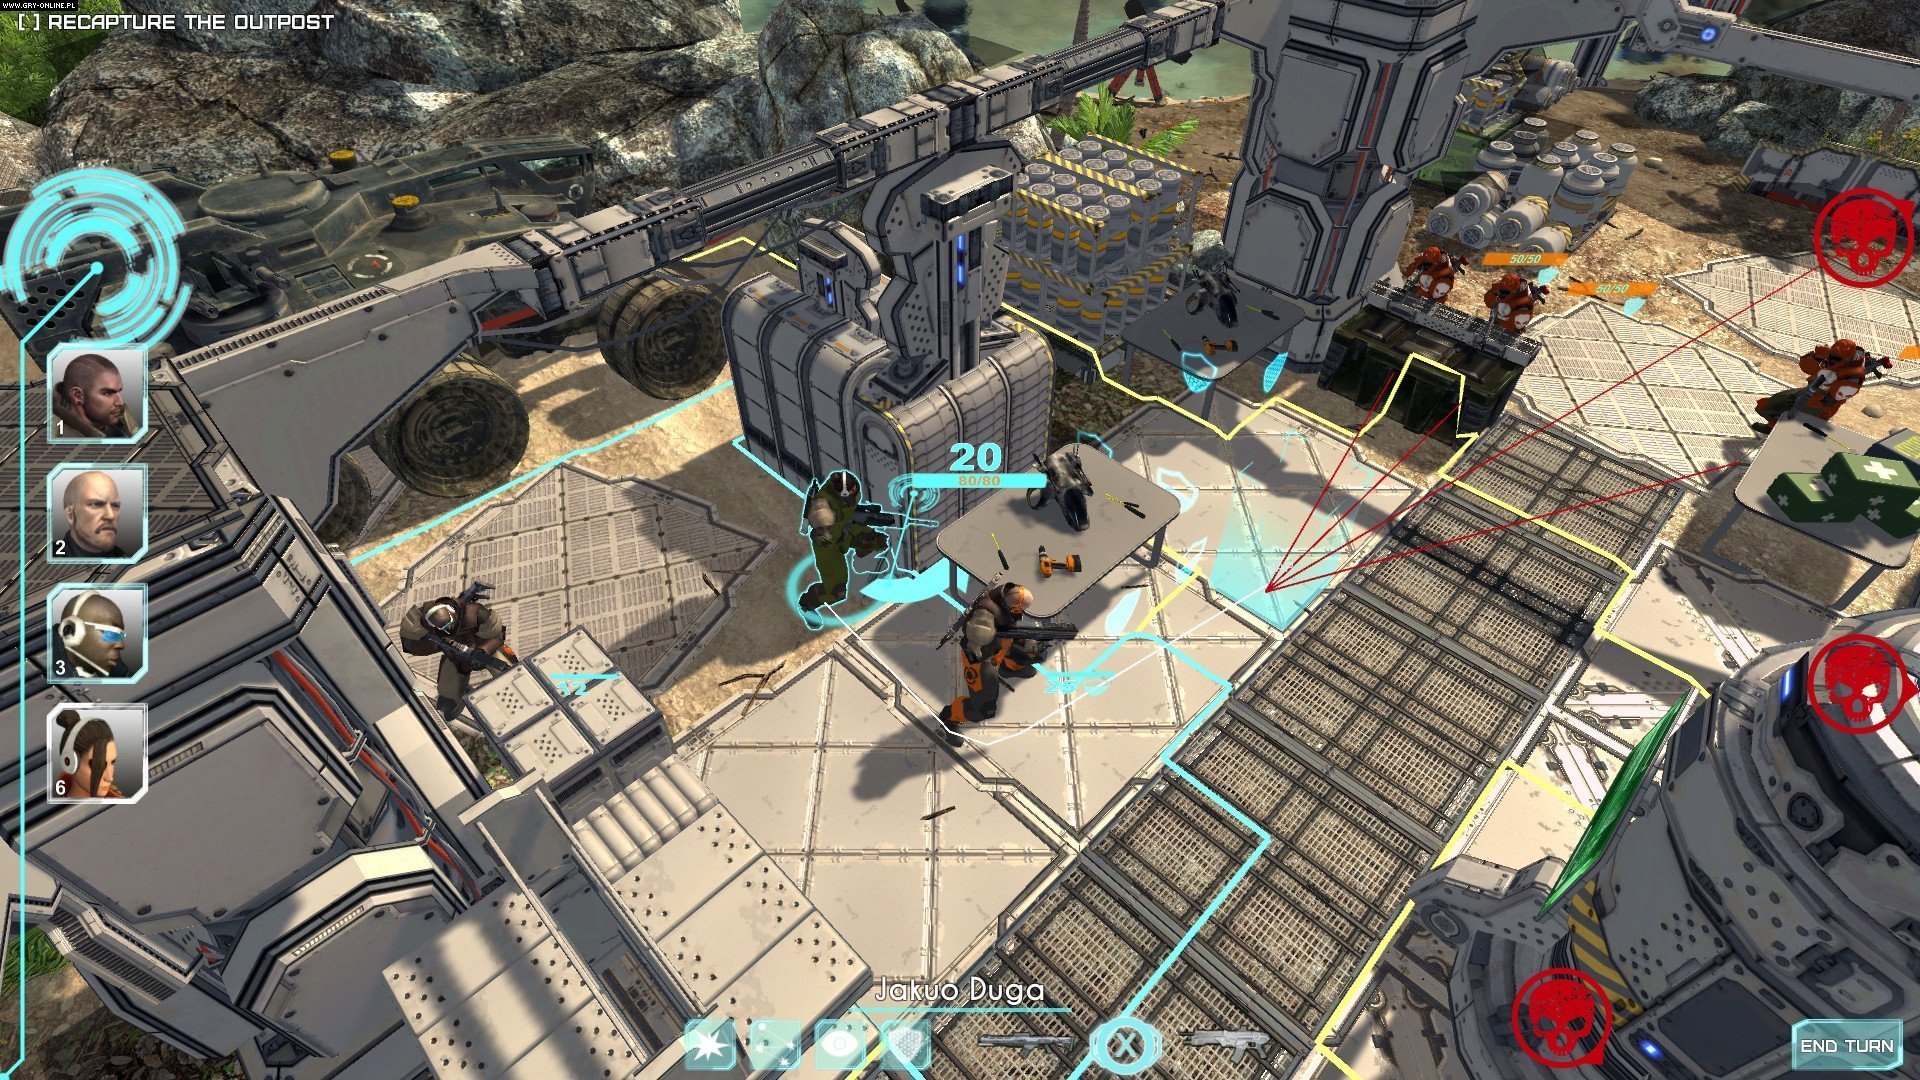 Shock Tactics PC Games Image 5/9, Point Blank Games, EuroVideo Medien